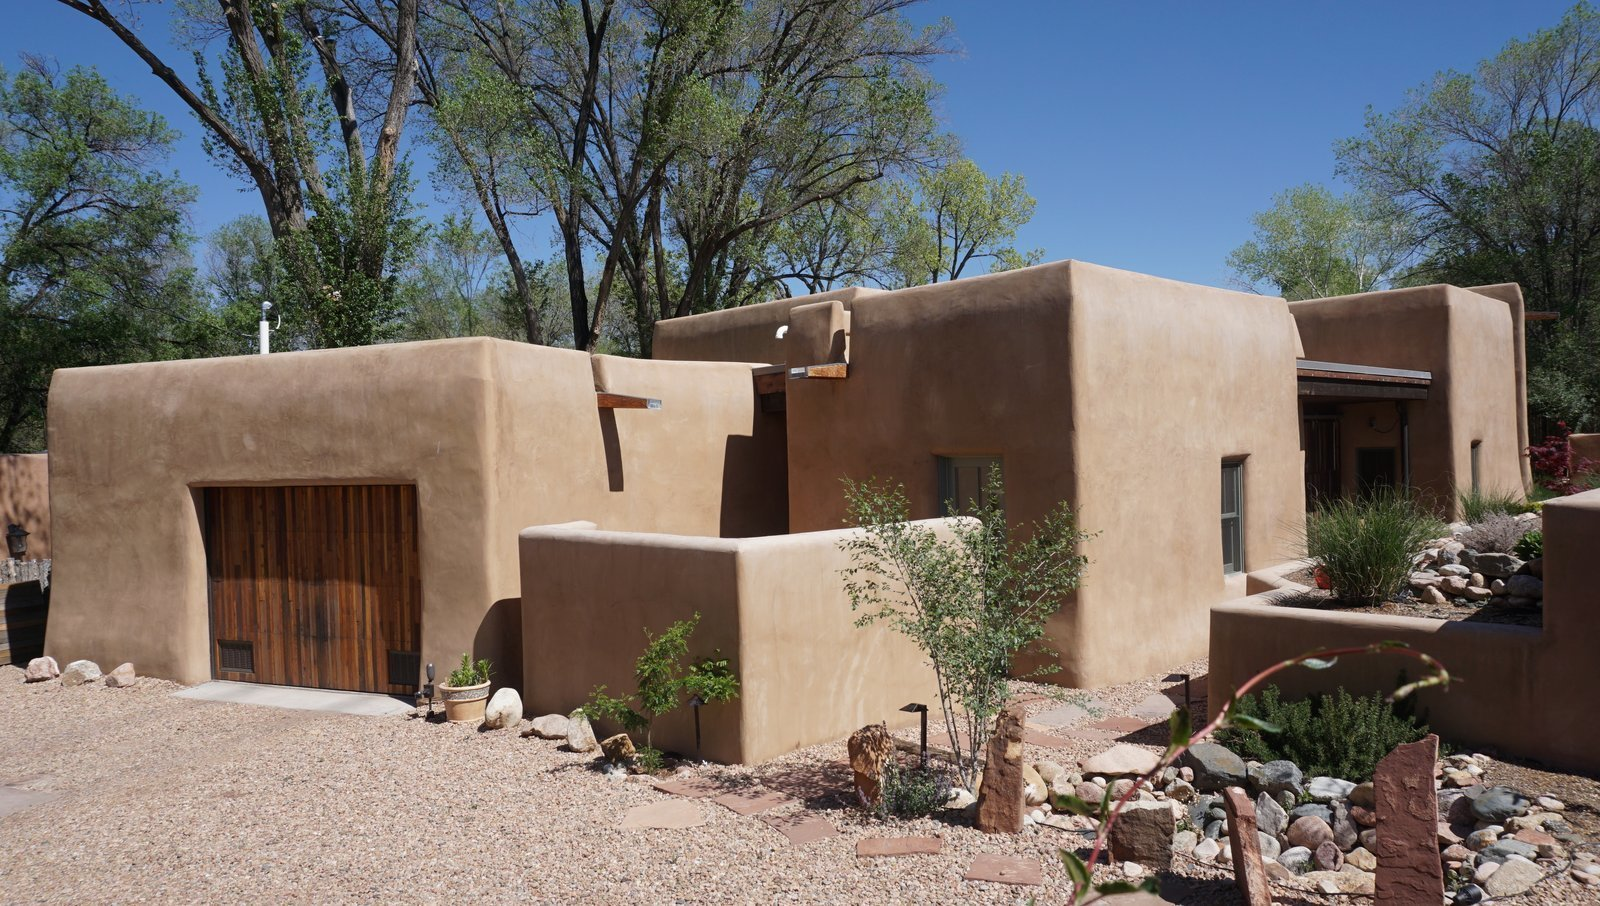 Exterior and House Building Type A classic Santa Fe property designed by a local architect.  Photo 3 of 10 in Top 10 Cities to Witness Stunning Architecture Across America